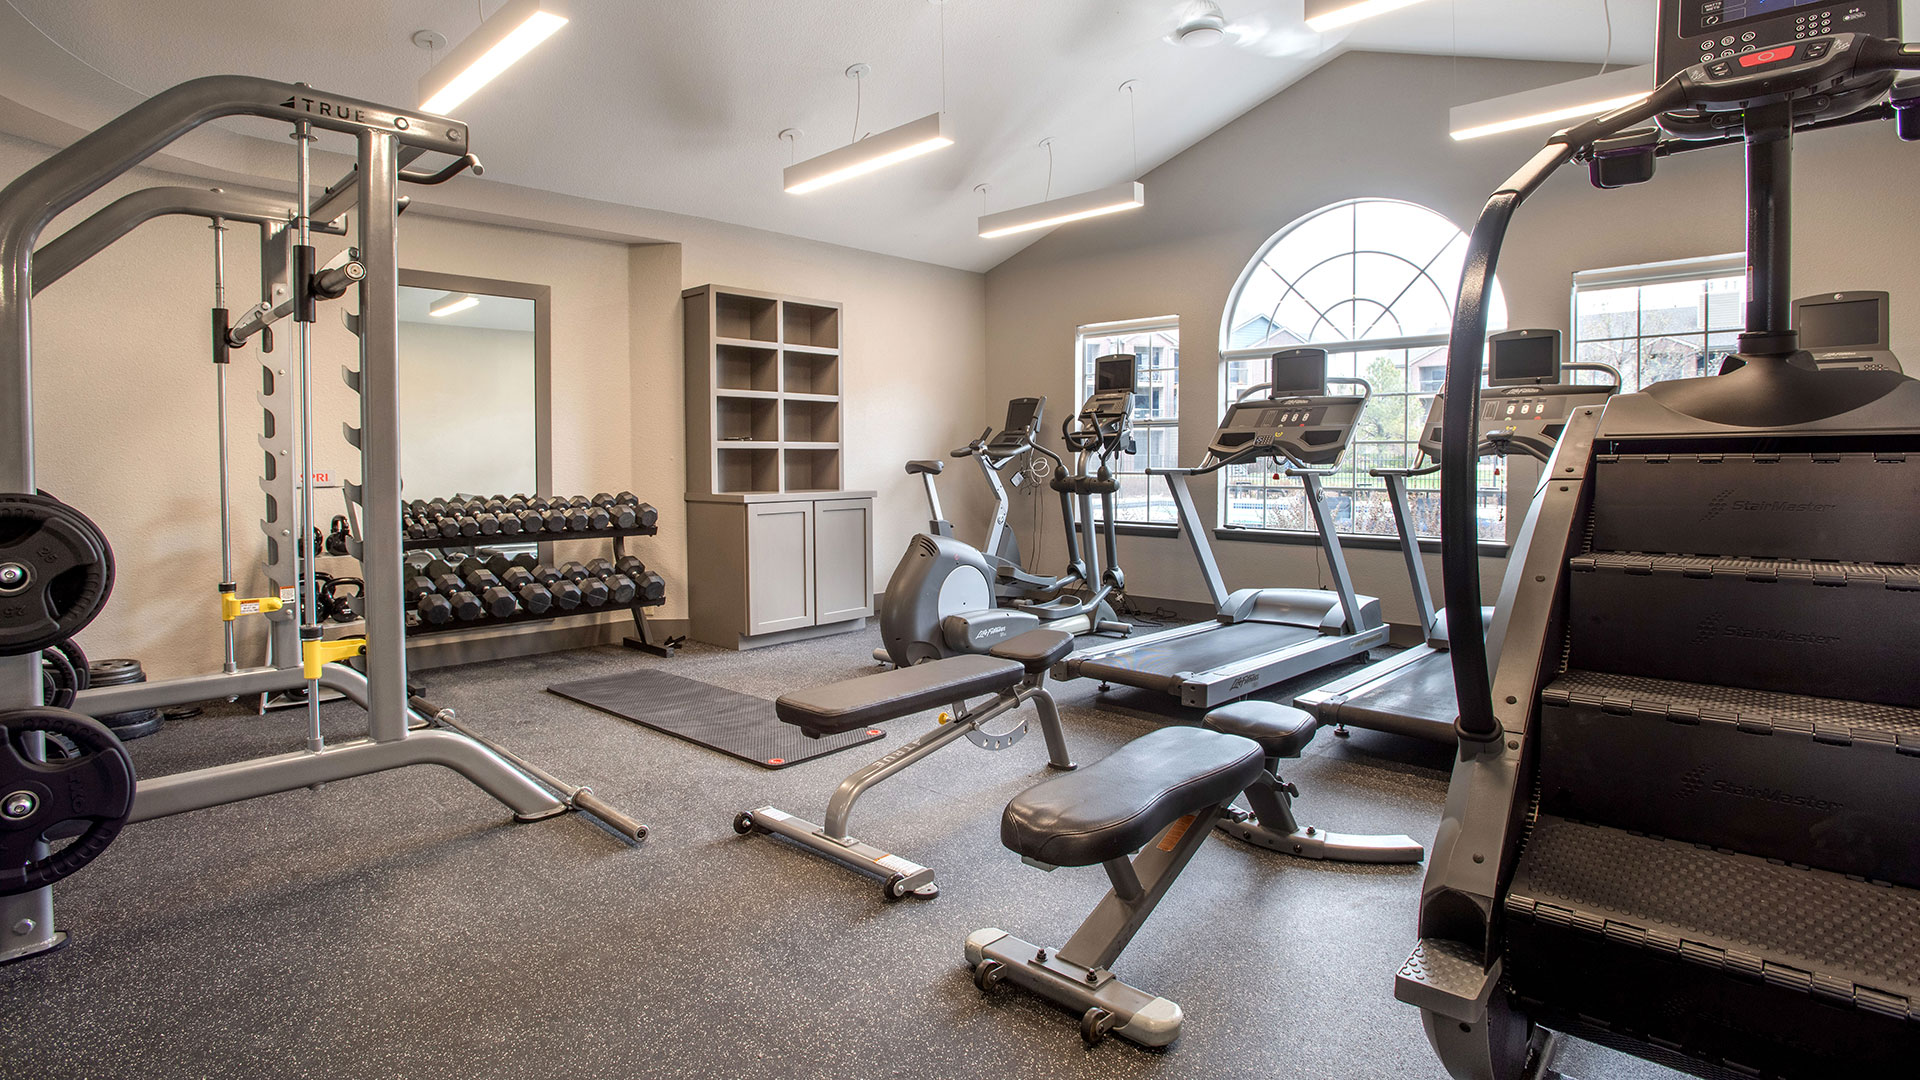 Fitness Center with State-of-the-Art Equipment